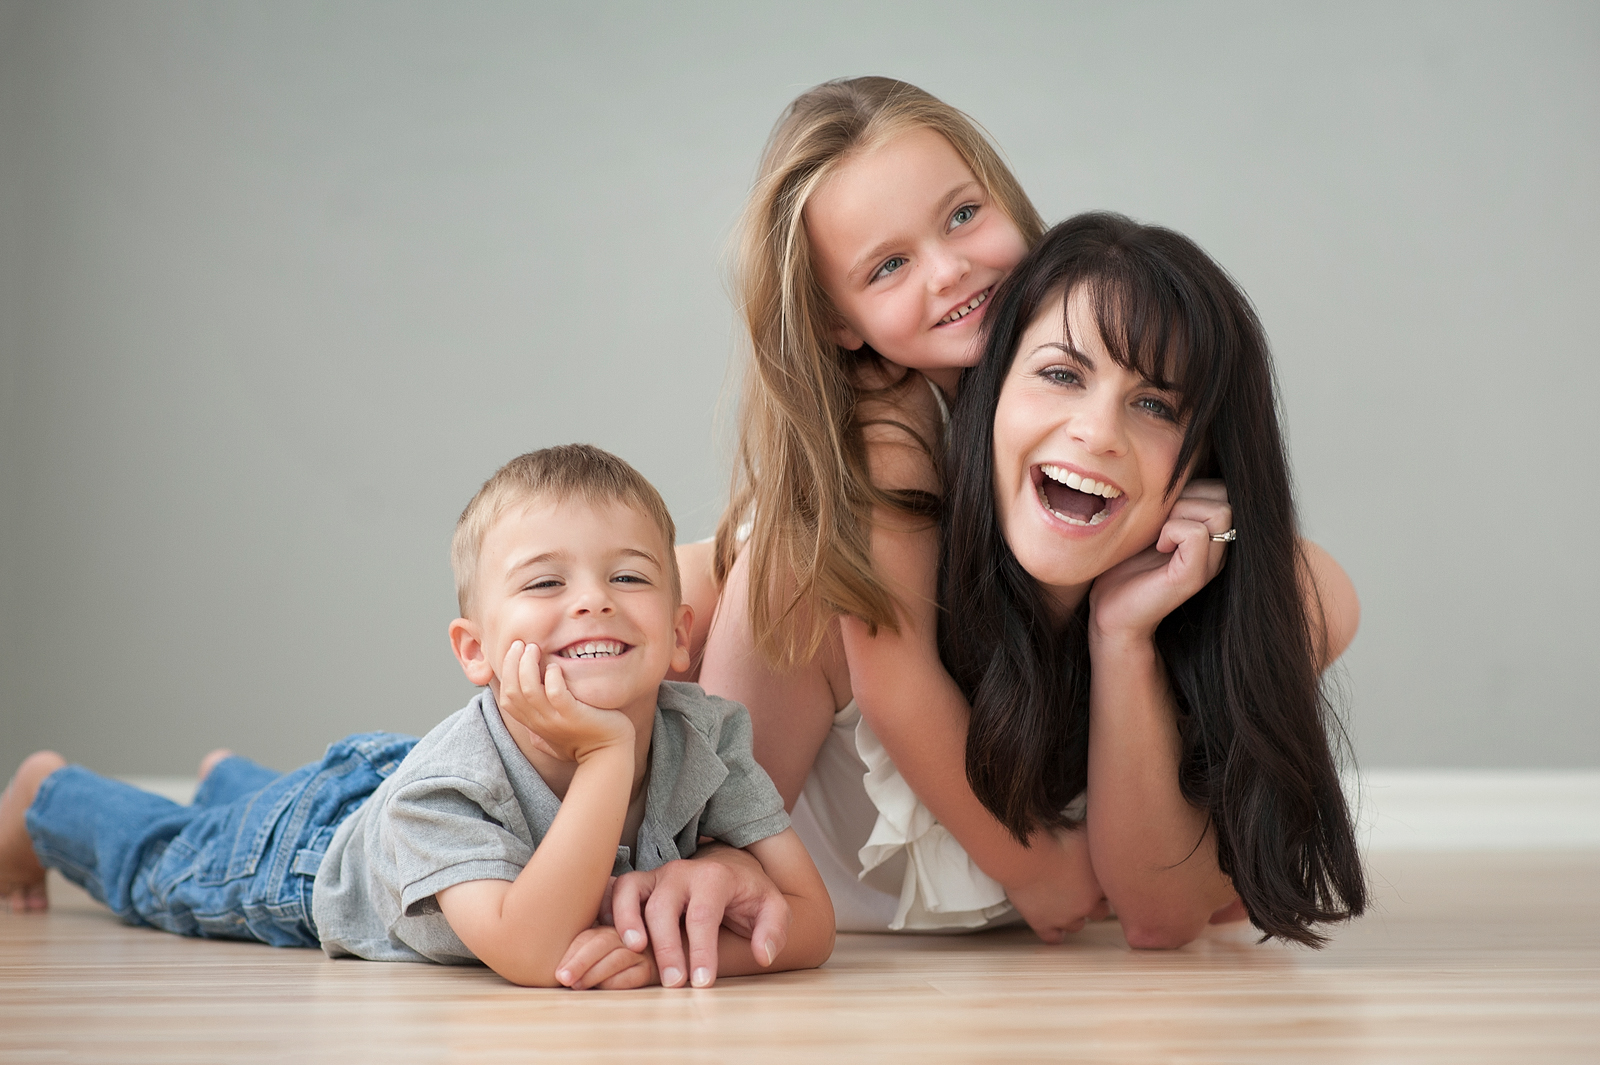 22-laughing-family-mother-children-laying-floor.jpg